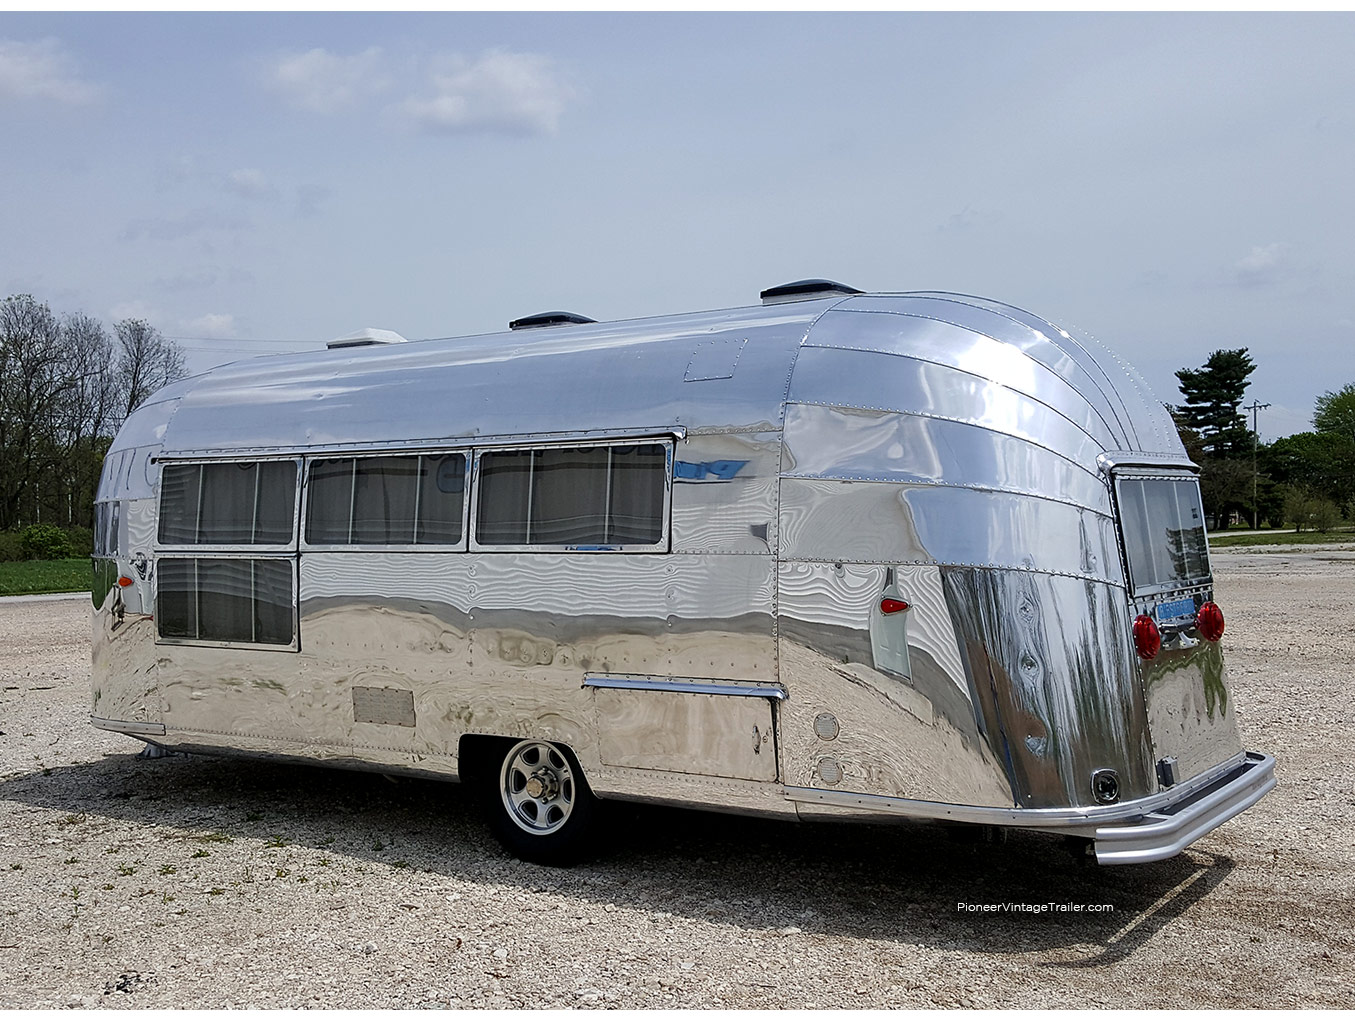 1957 Airstream Caravanner Pioneer Vintage Trailer